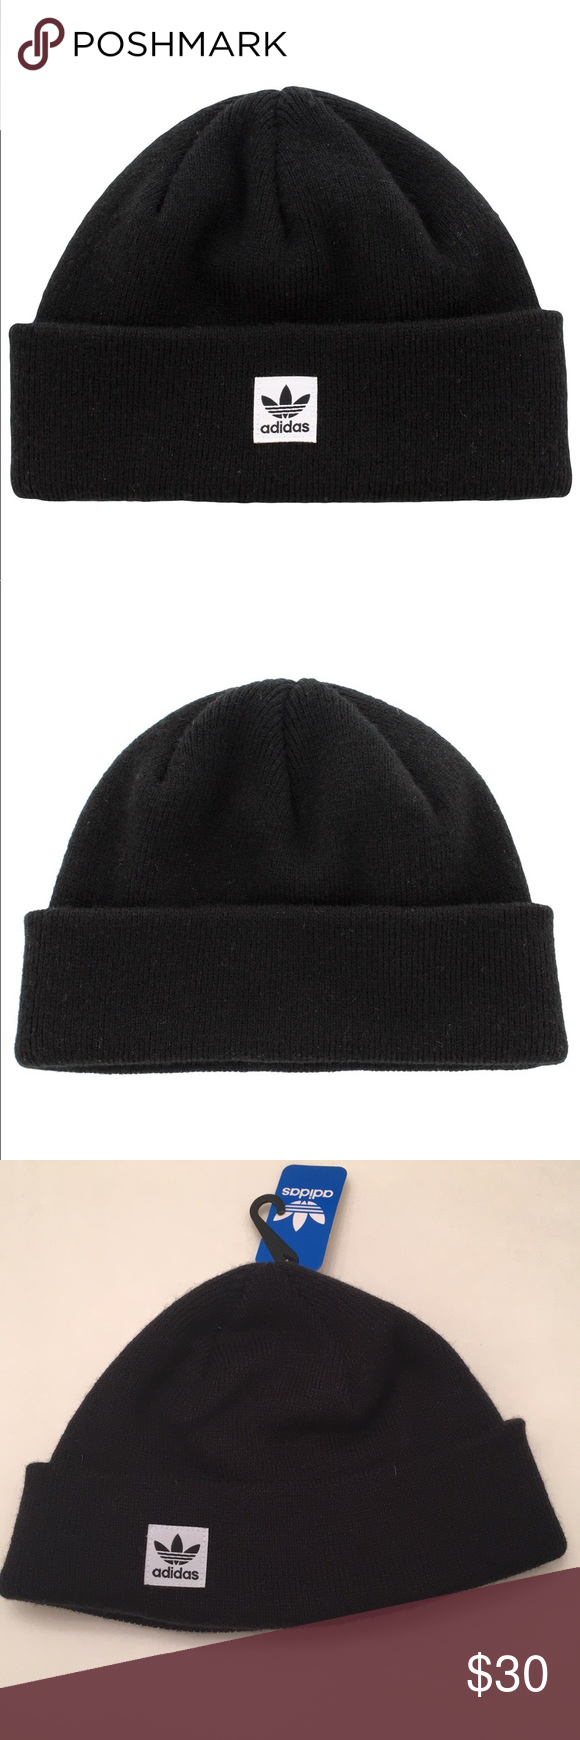 c9bb7626402 adidas Mens Originals Starboard Knit Beanie This adidas Originals starboard  knit beanie gives you the best